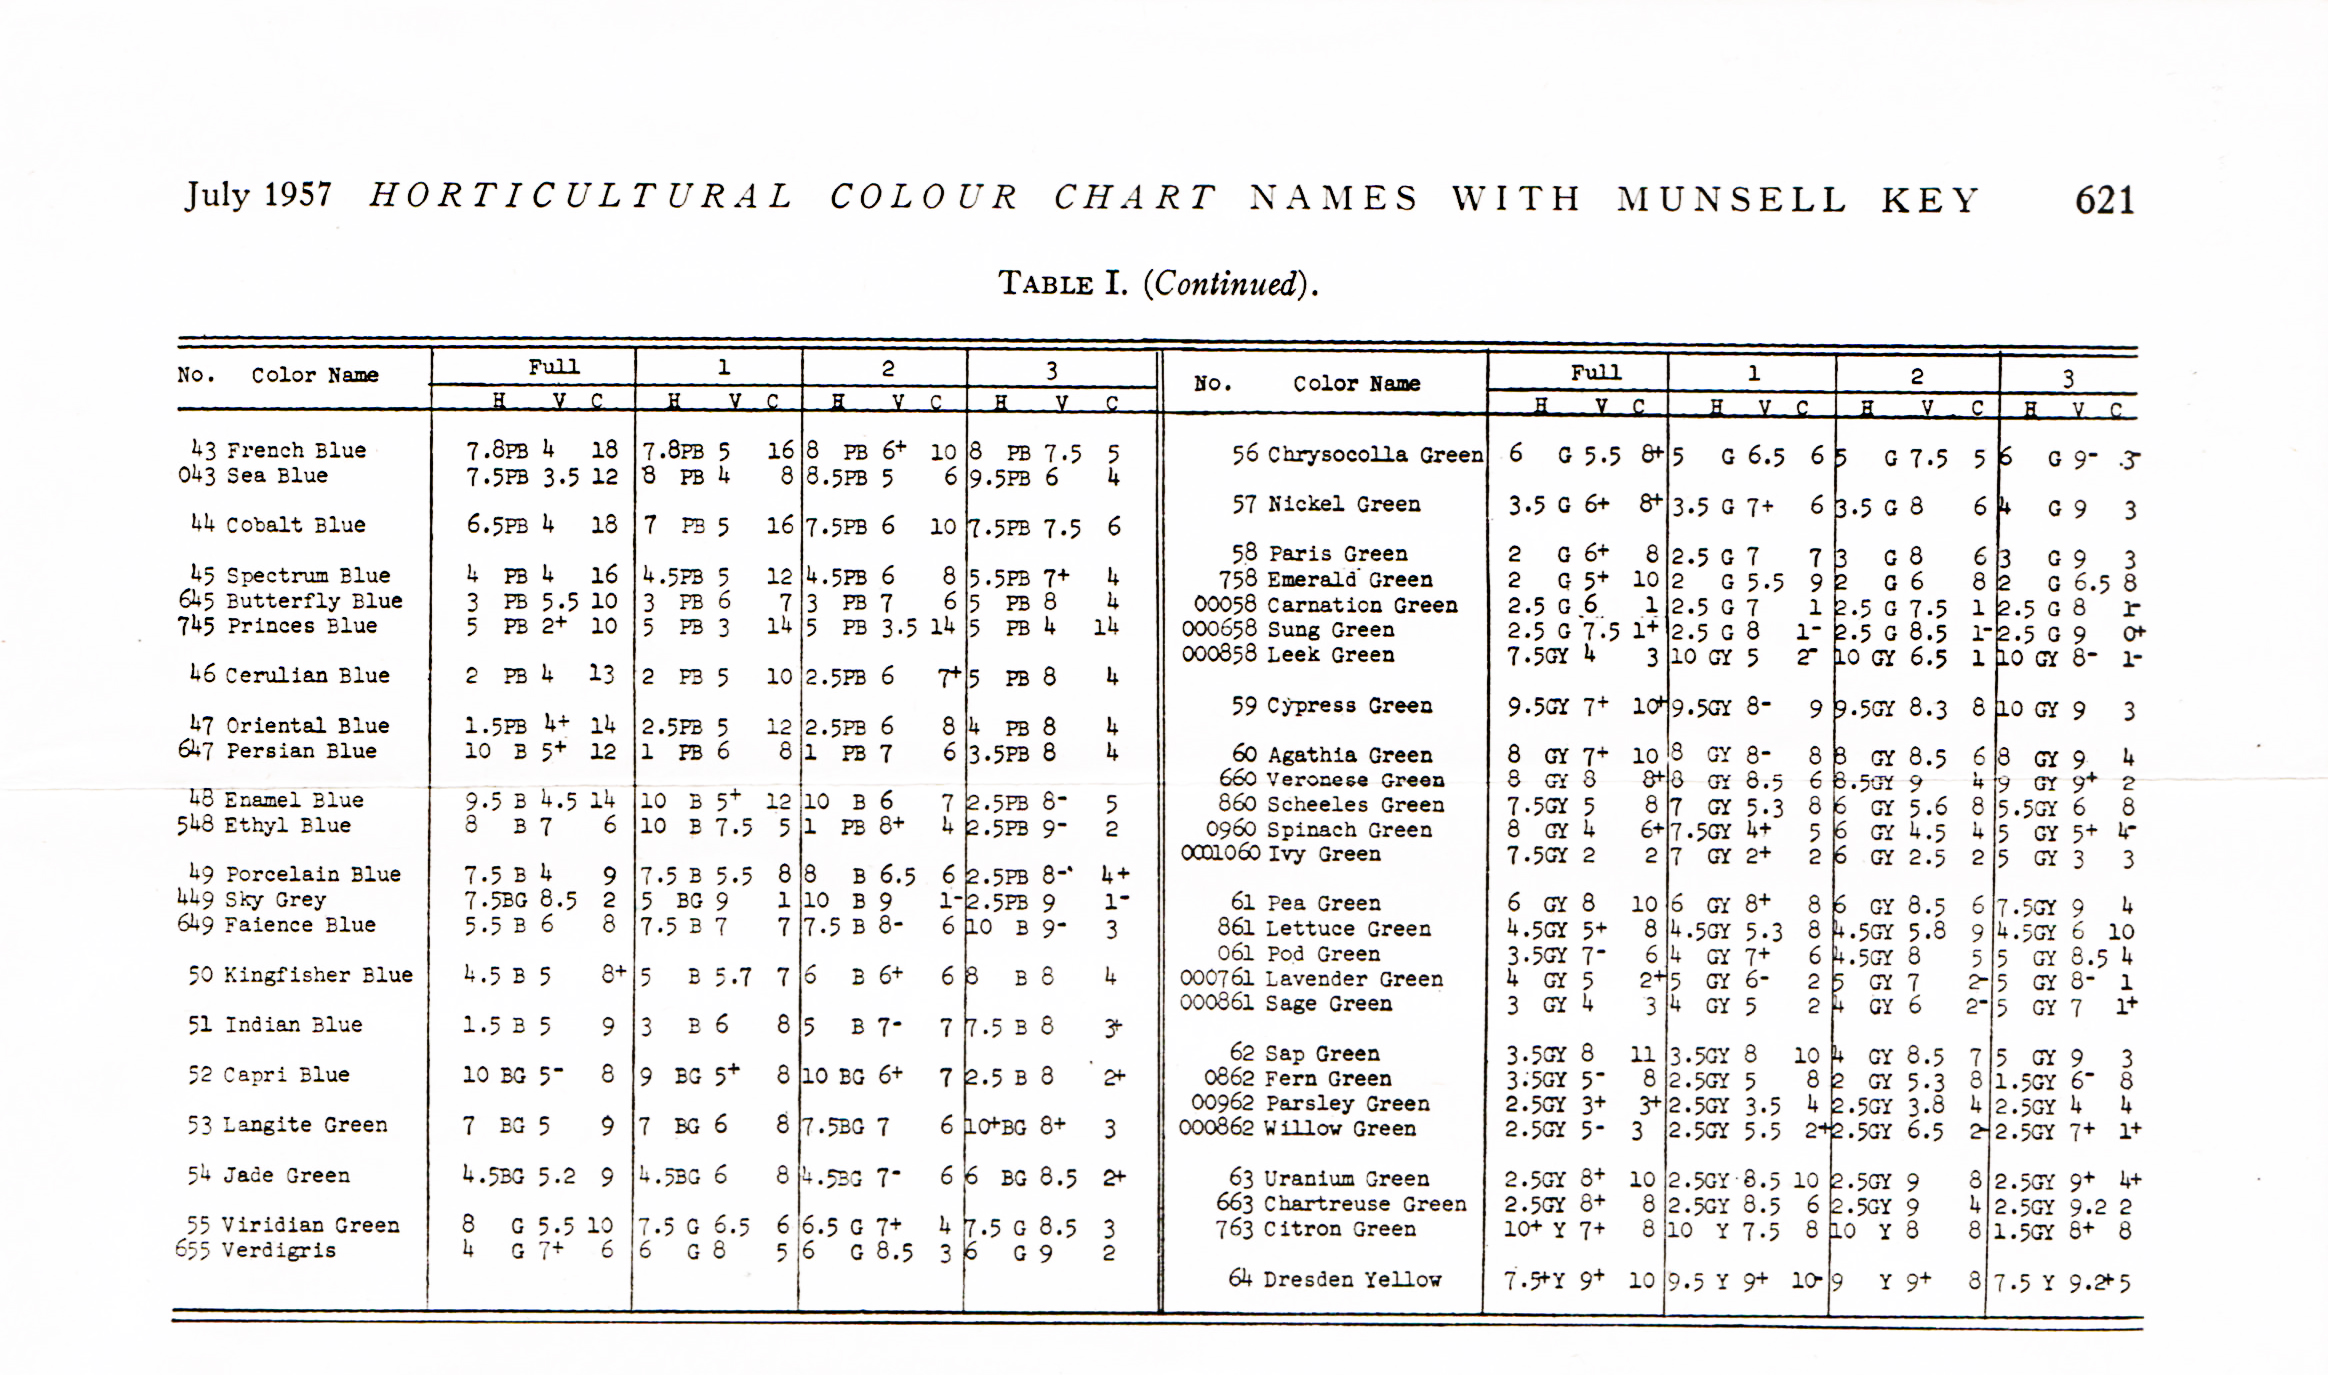 The Horticultural Colour Chart table with Munsell key for names